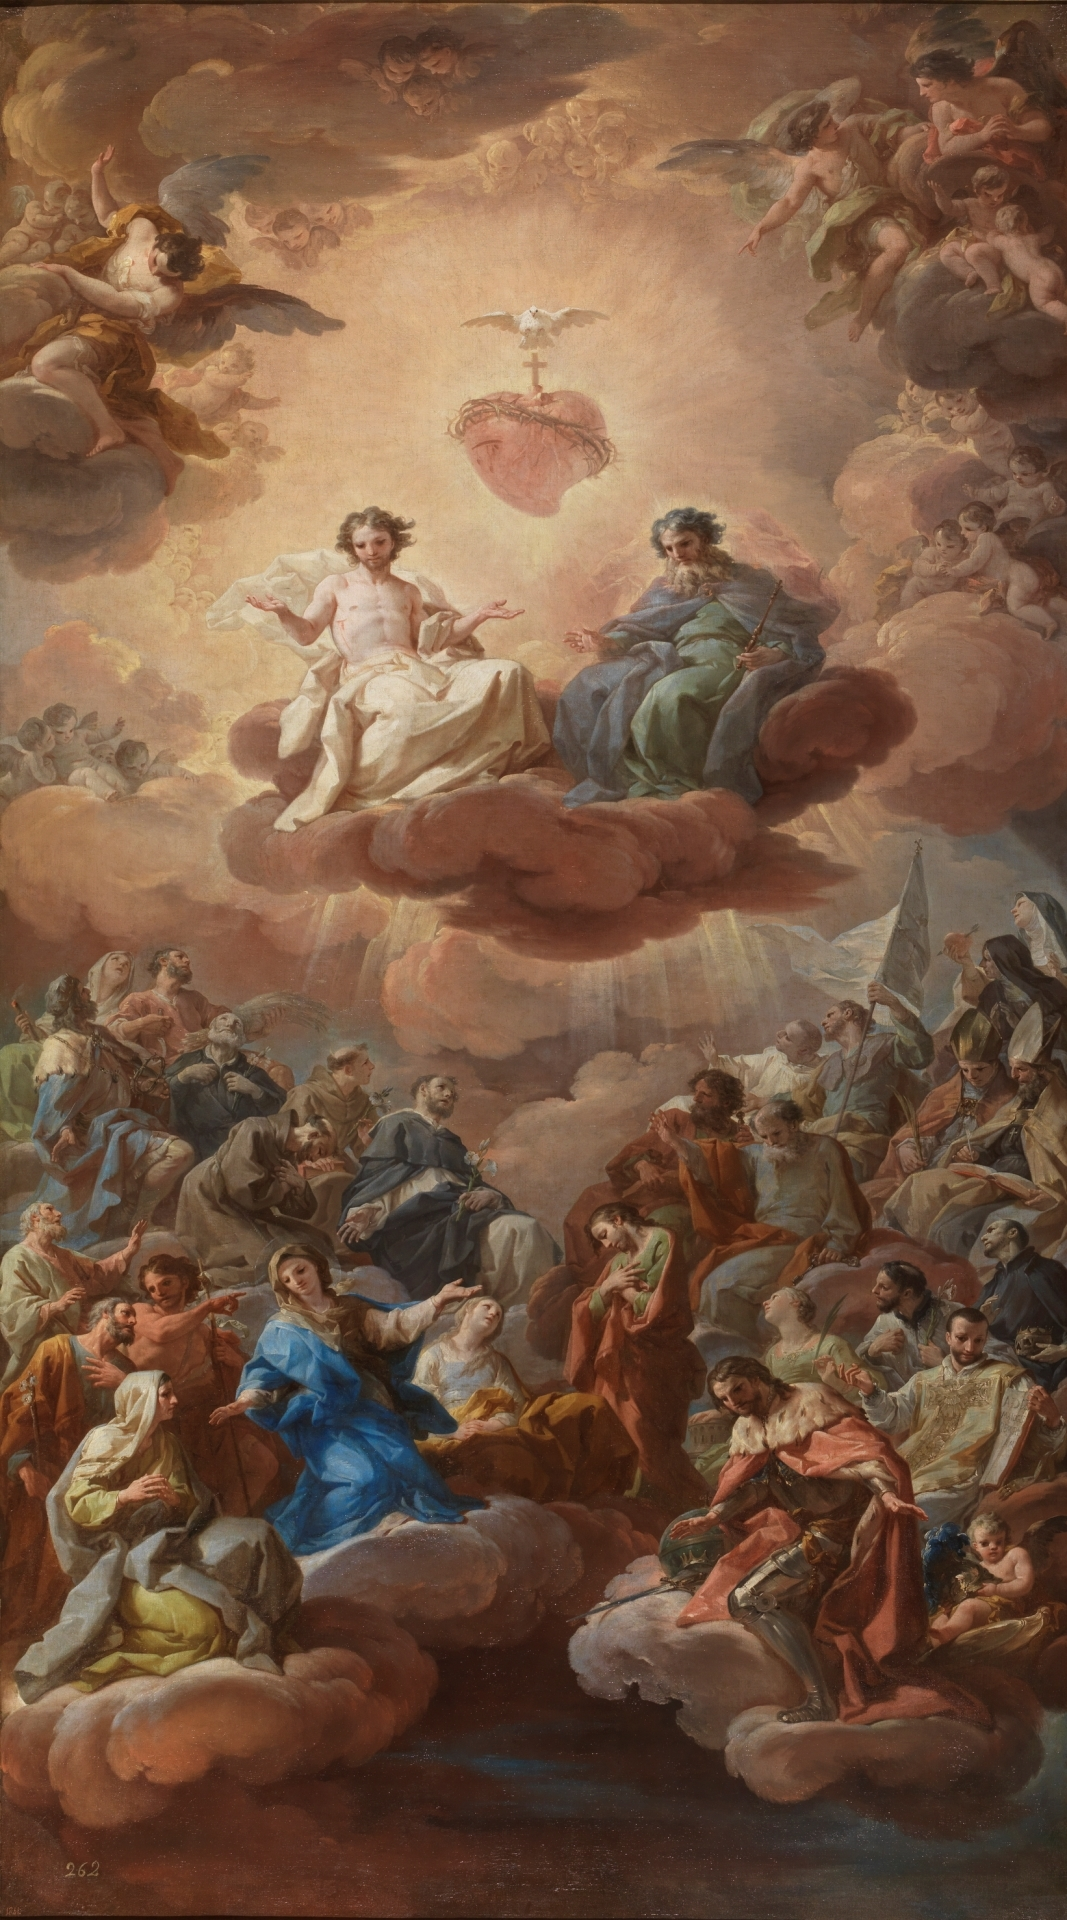 The Holy Trinity, by Corrado Giaquinto, c. 1754. Museo del Prado, Madrid, Spain. Via IllustratedPrayer.com